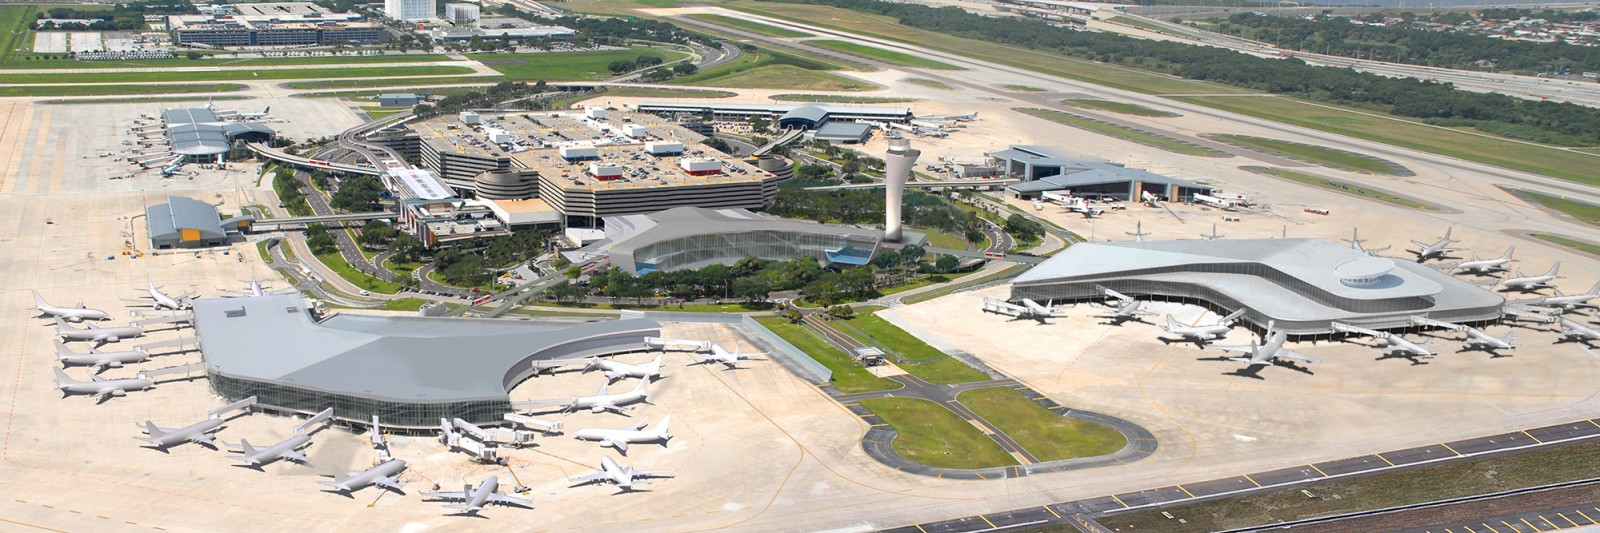 Tampa airport rental car facility and automated people mover the beck group